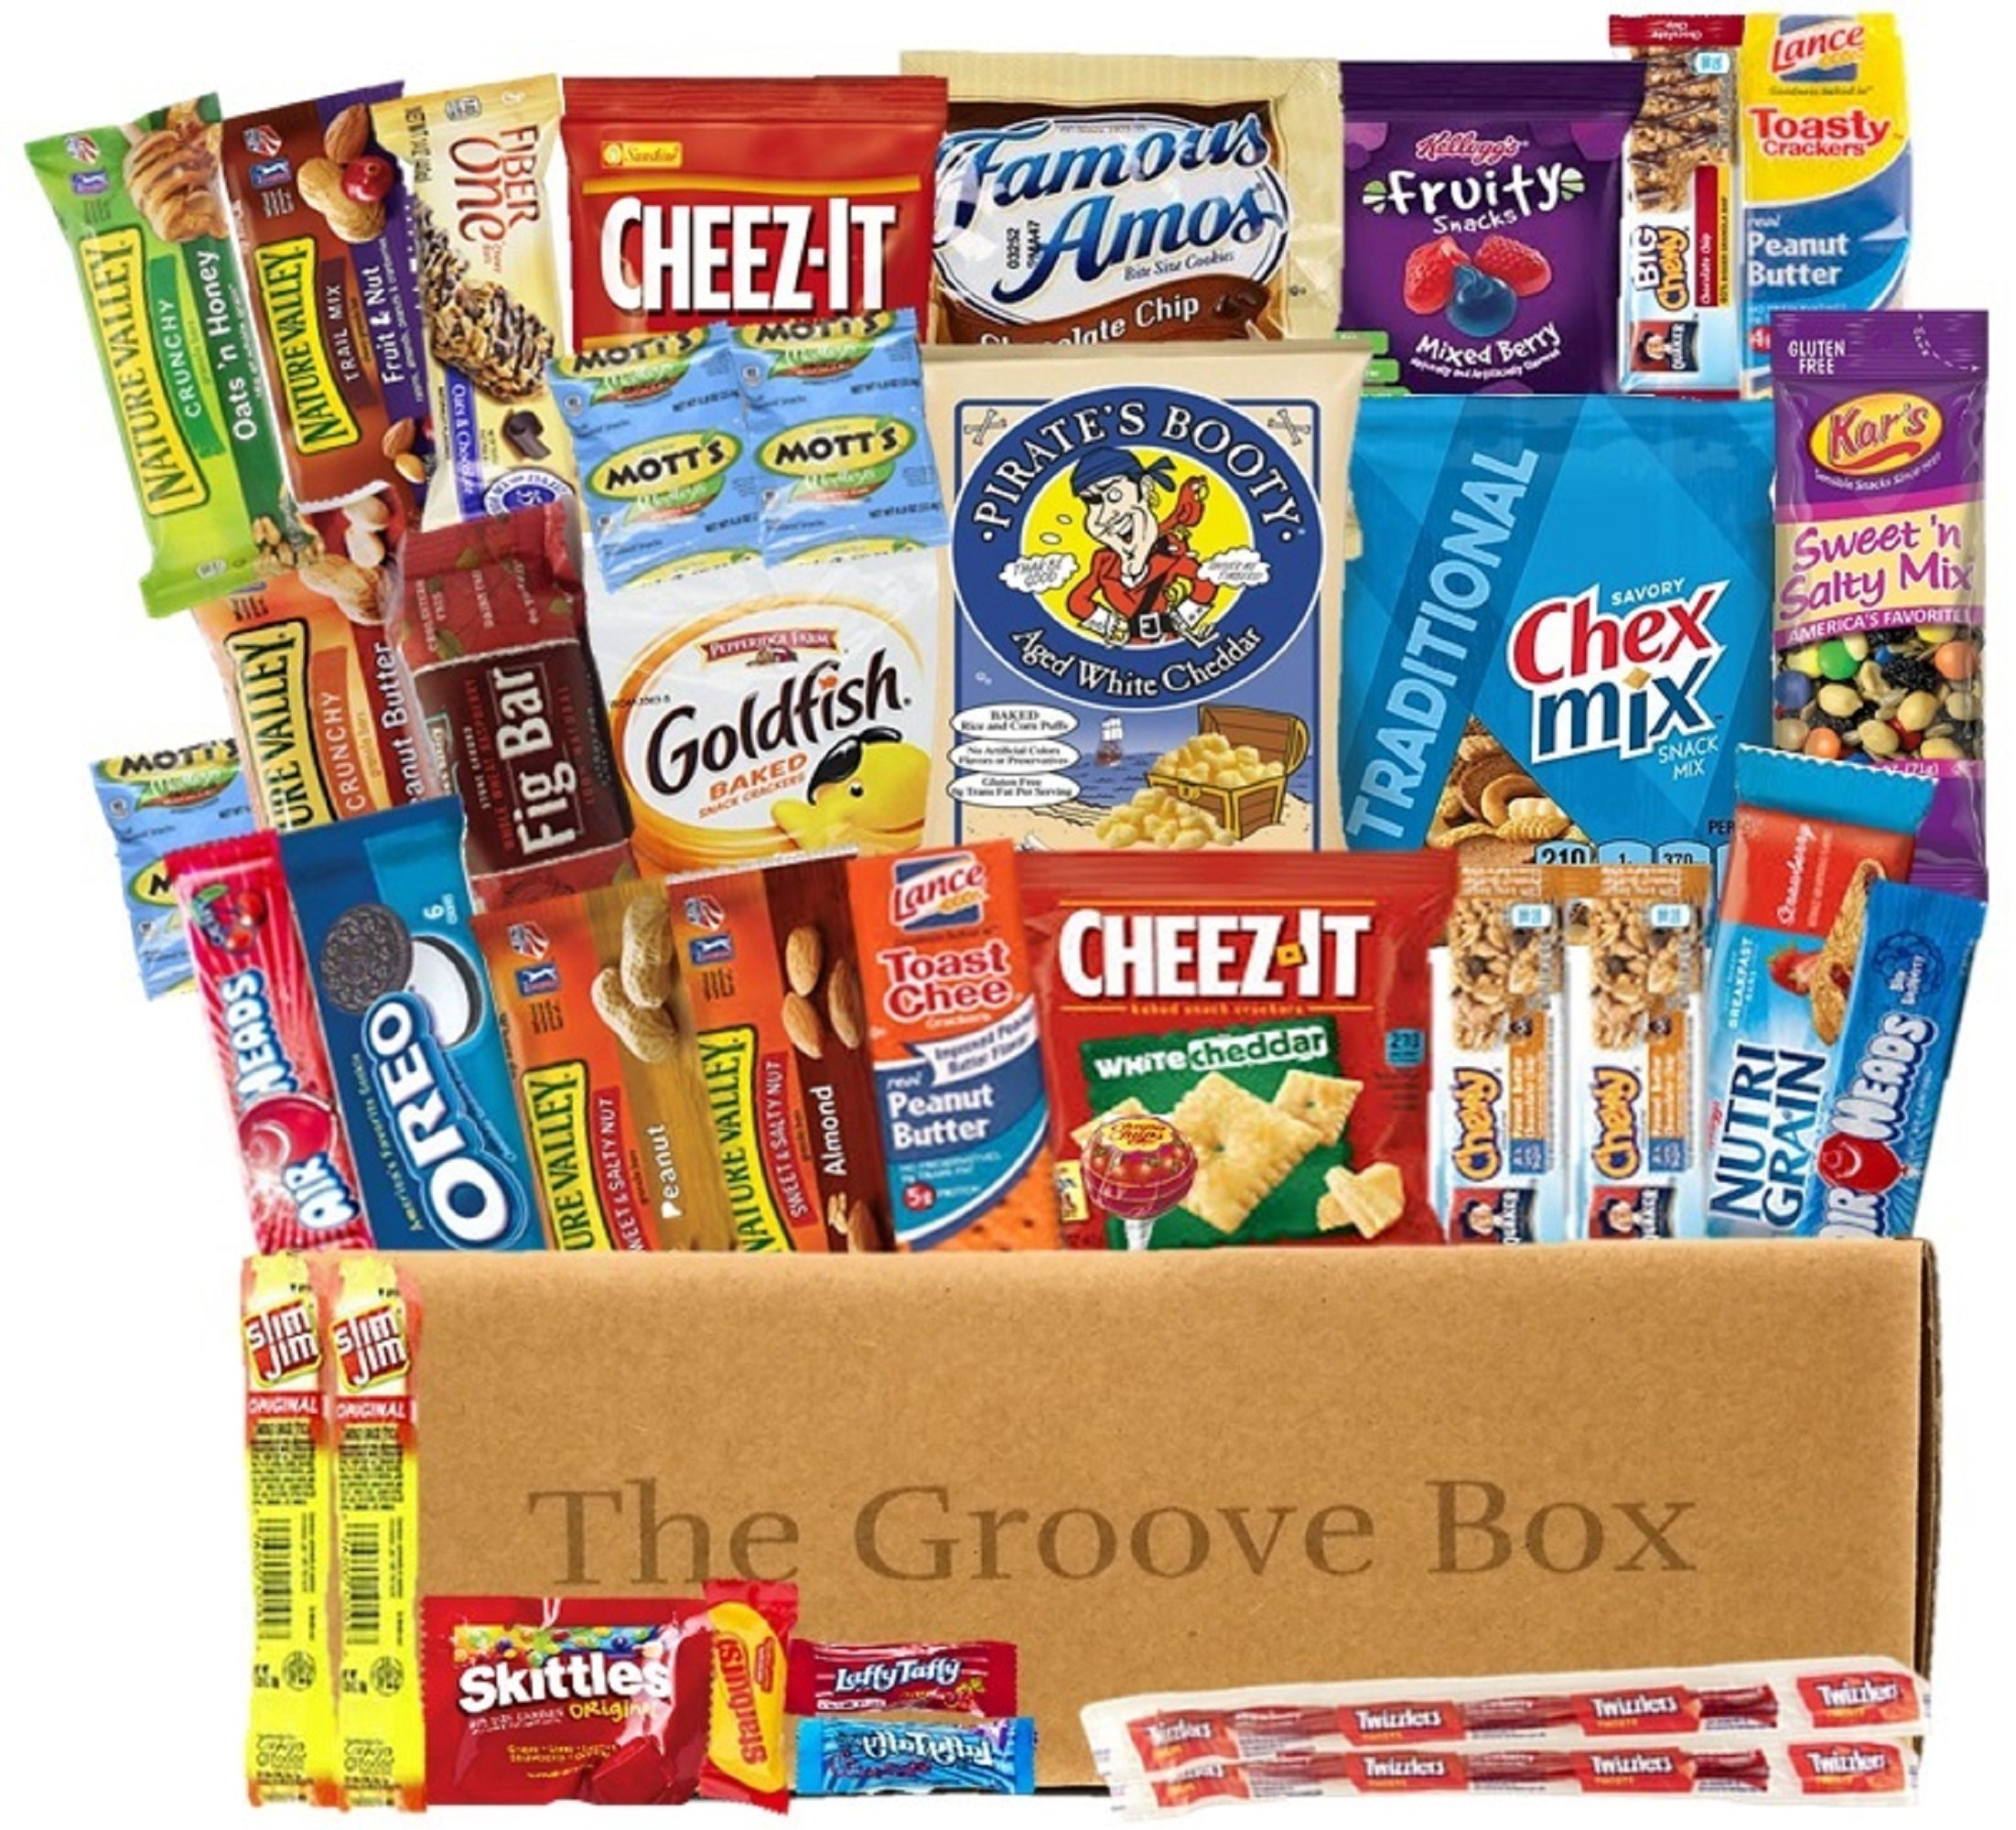 The Groove Box Variety Snack Box Assorted Chips, Snacks, Bars and More Over 40 Snack Items Care Package To Share and Send Friends, College Students, Military, Road Trip Snack Box